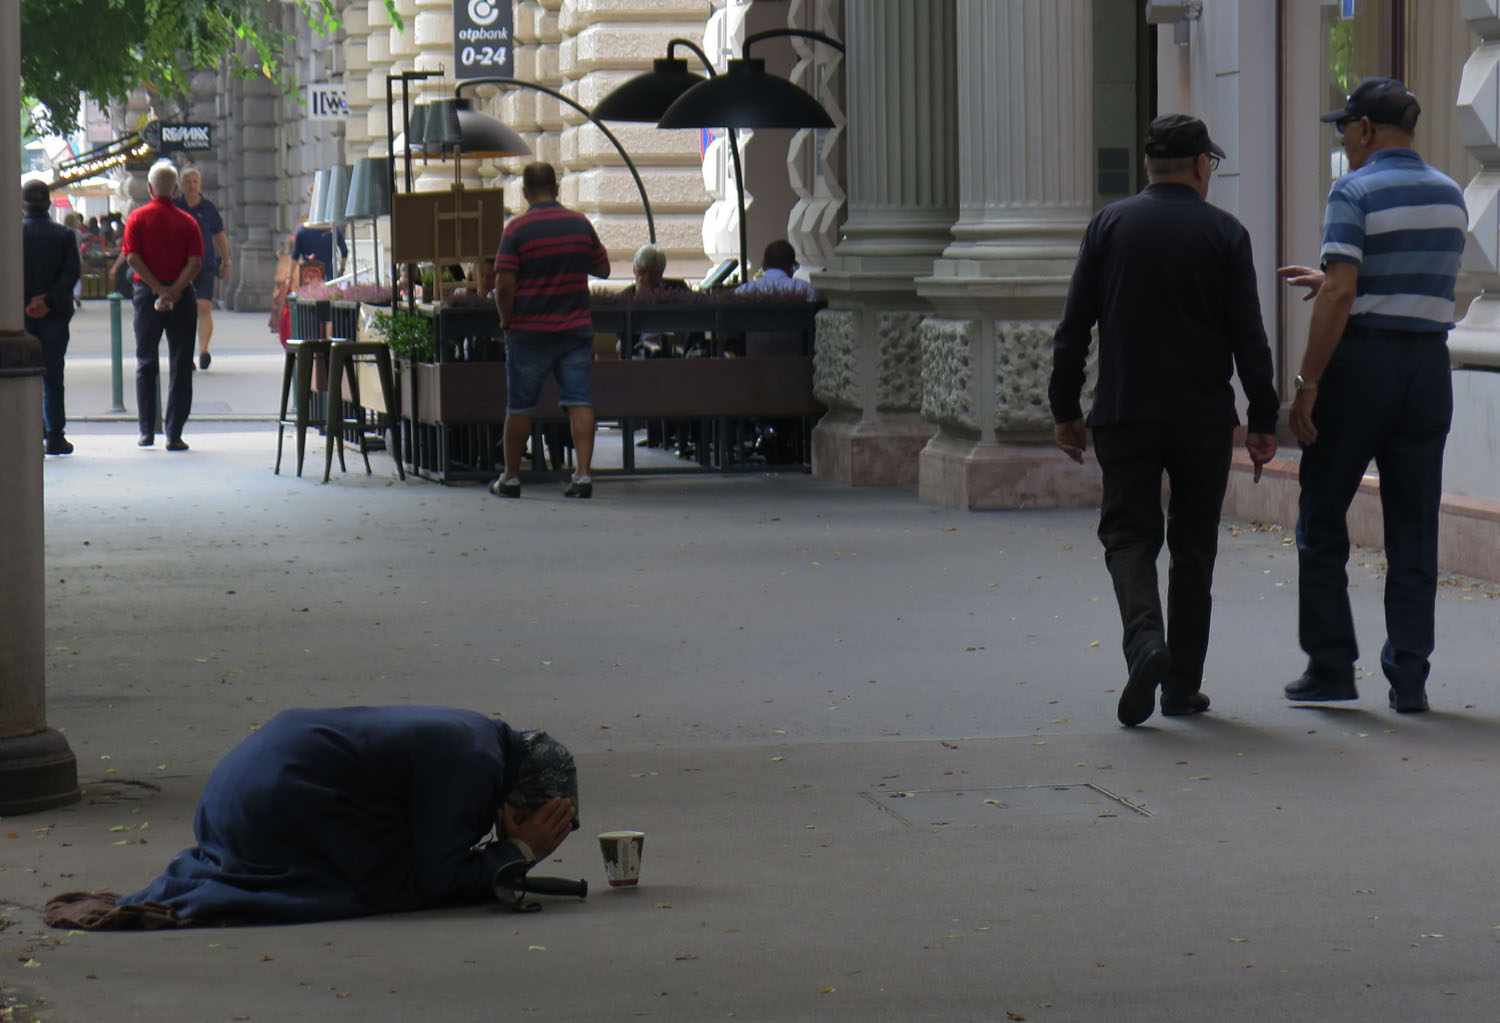 hungary-budapest-street-scenes-woman-begging